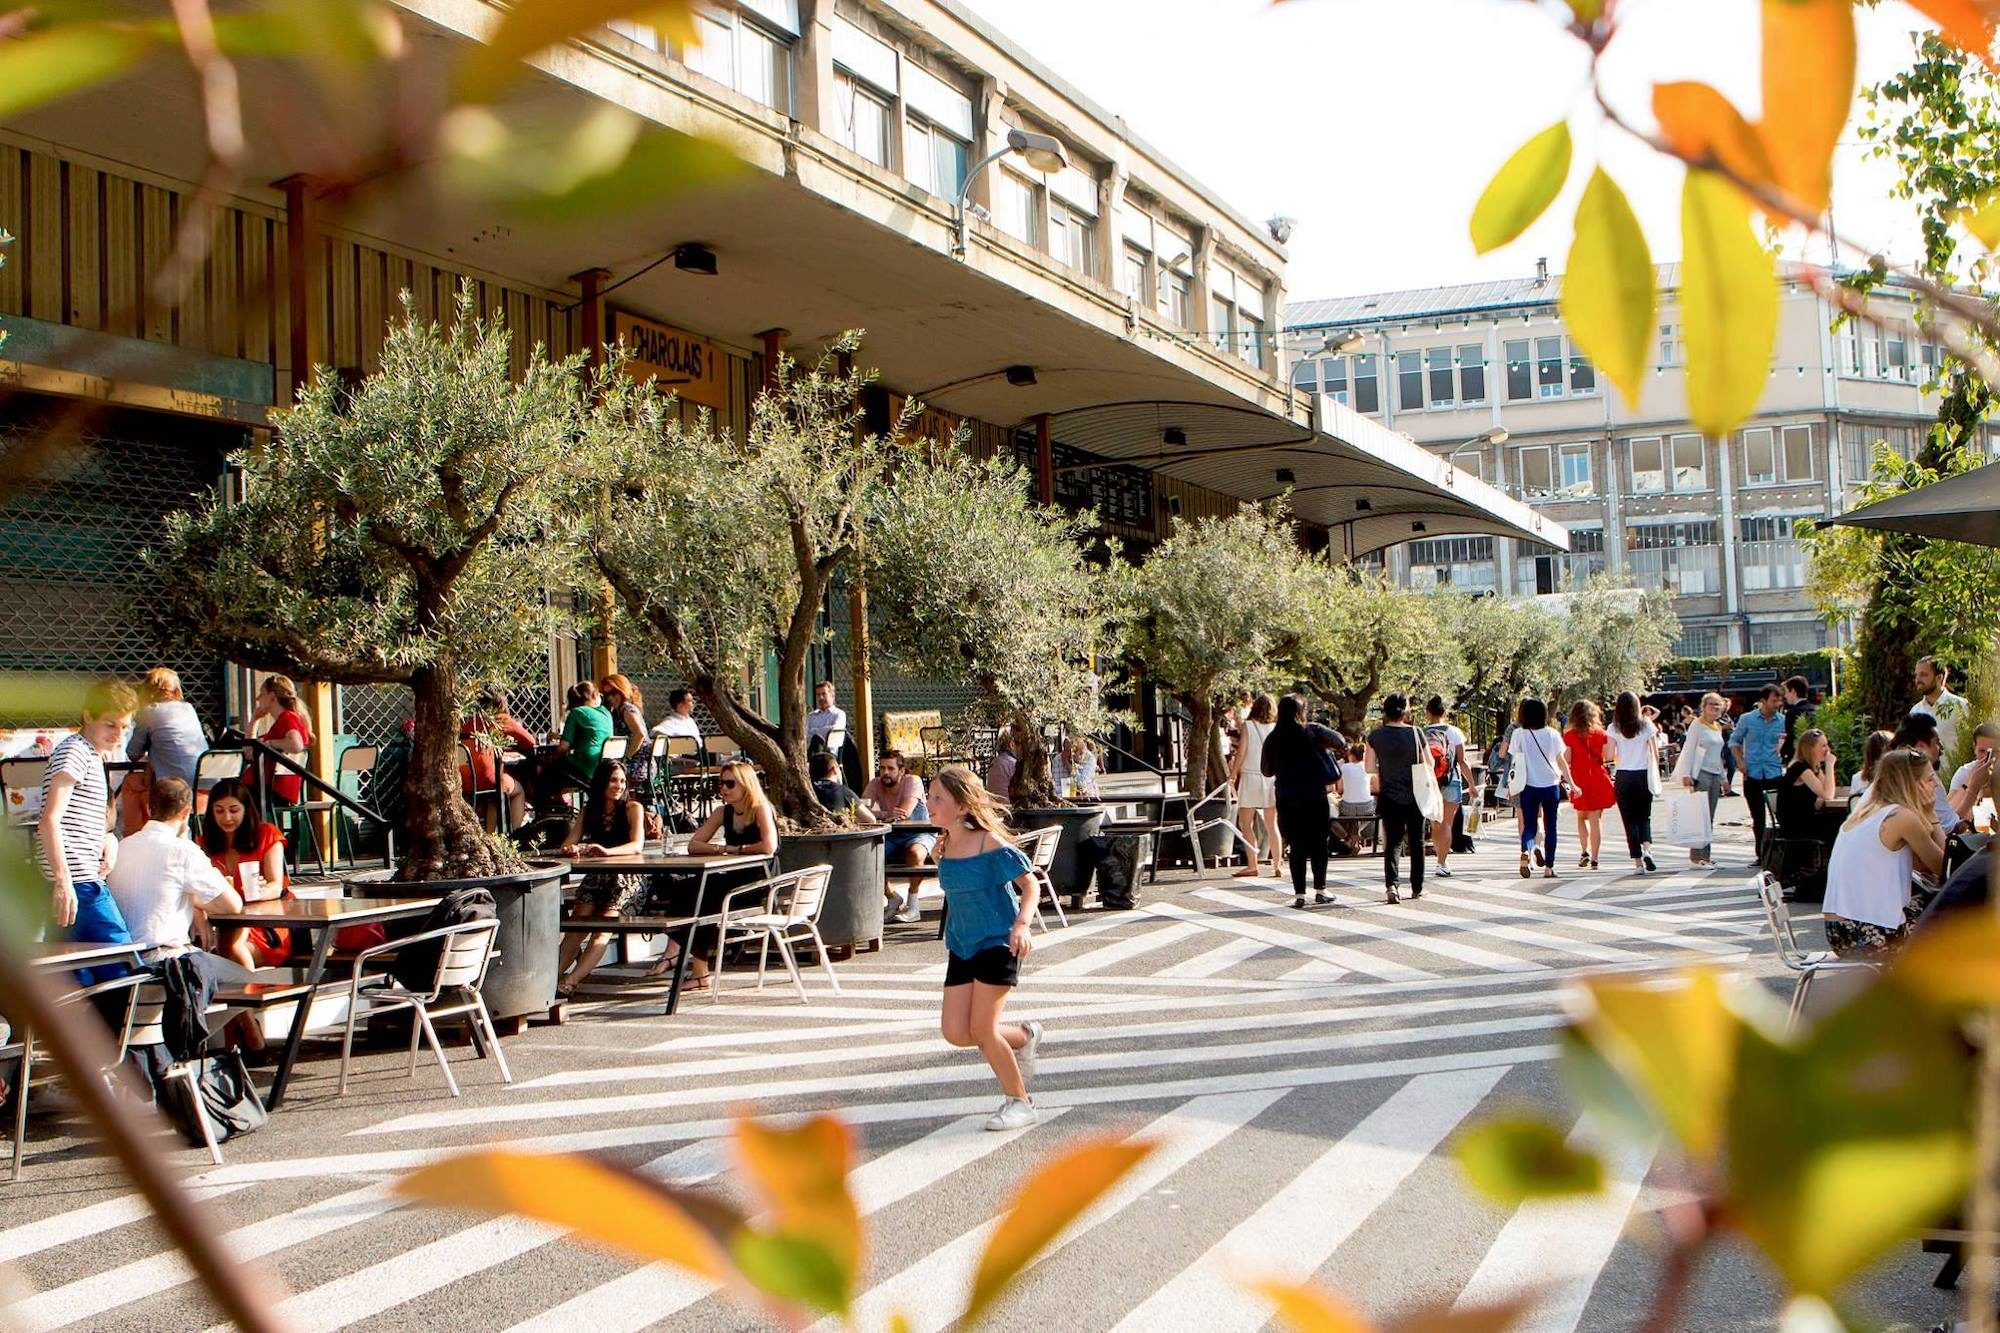 Ground Control is one of our favorite terraces in Paris in summer as it has a large outdoor space with potted olive trees and plenty of food options.